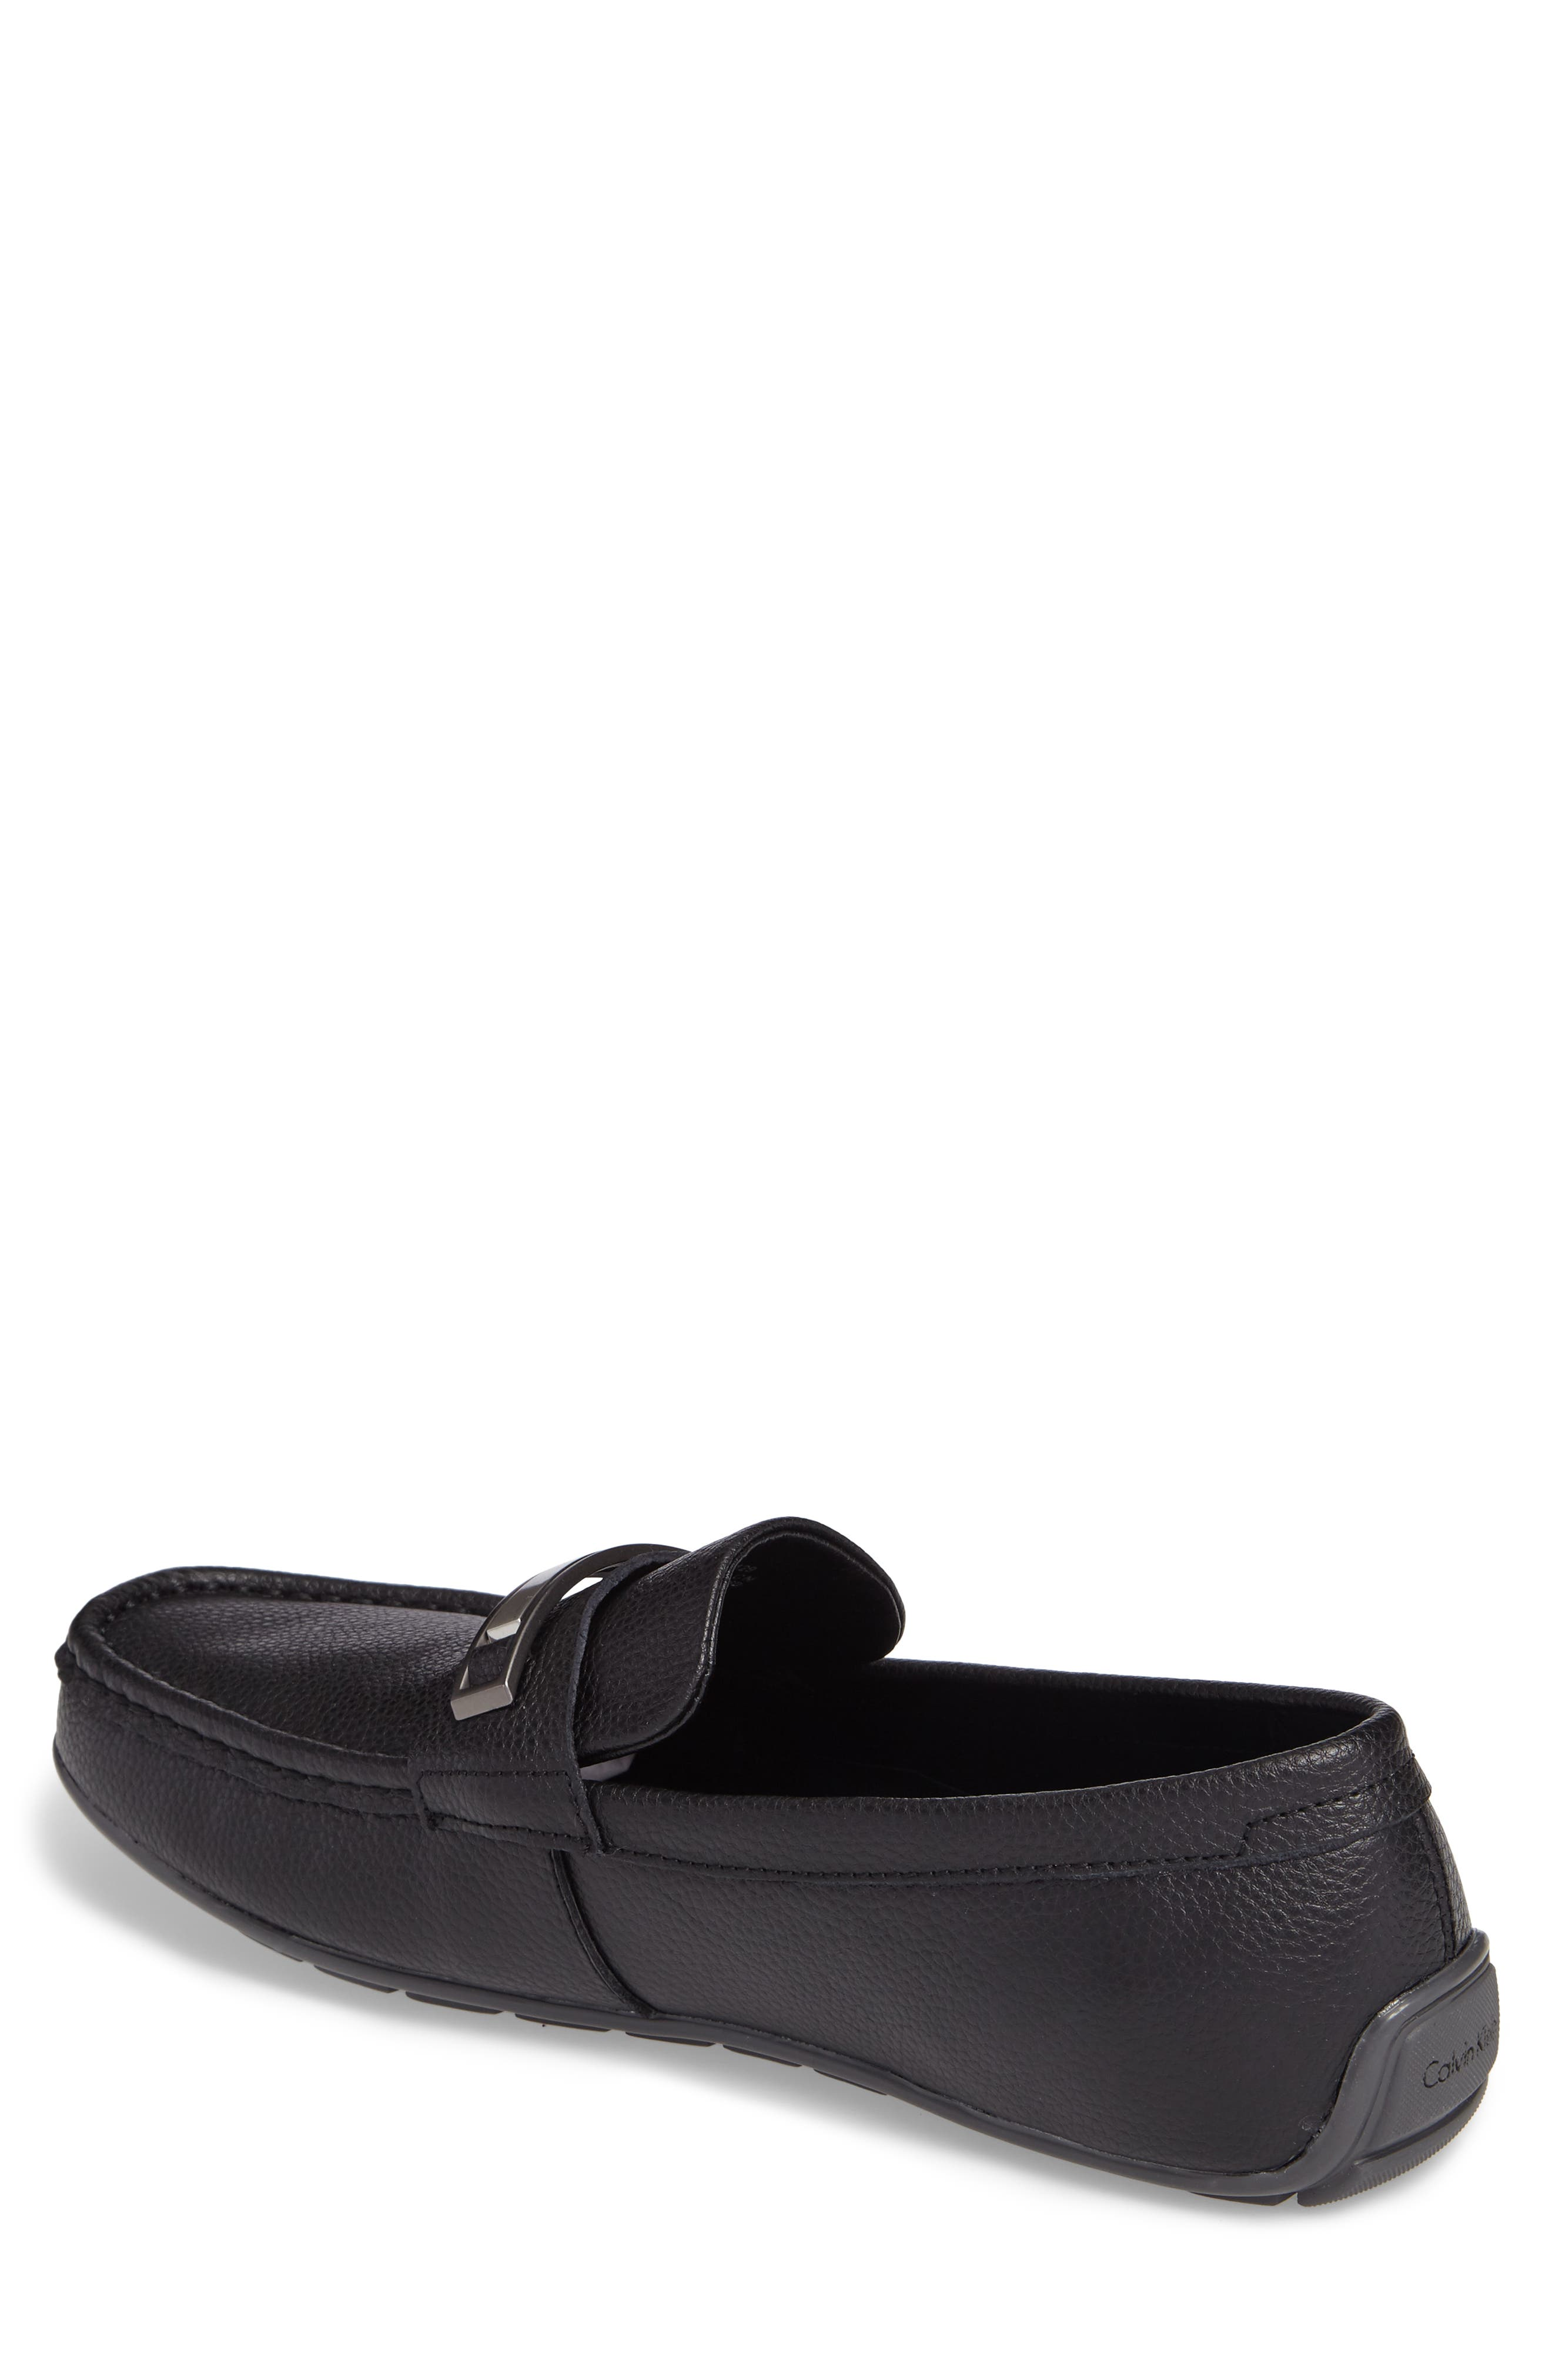 Irving Driving Loafer,                             Alternate thumbnail 5, color,